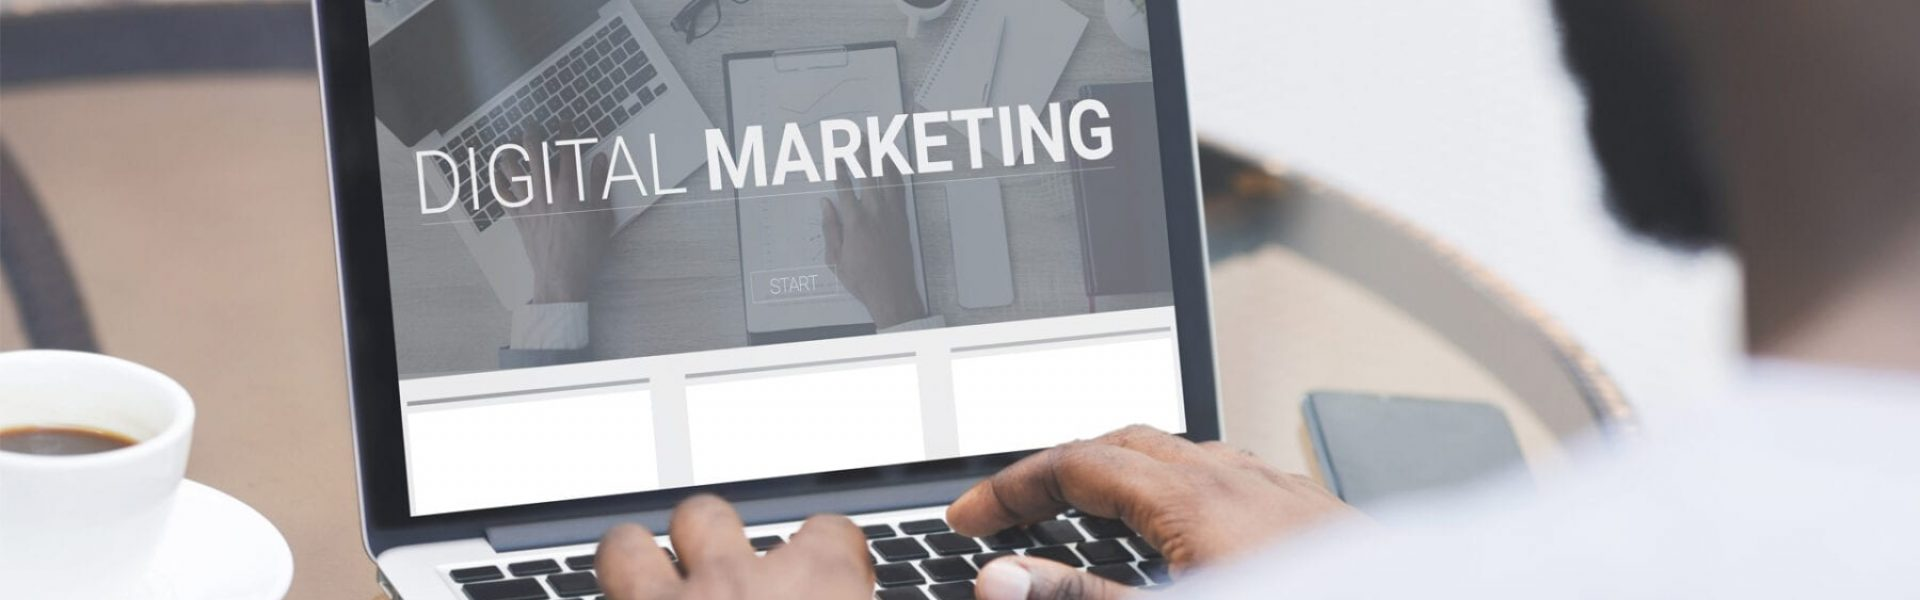 Digital Marketing Makes it All Possible - PushLeads